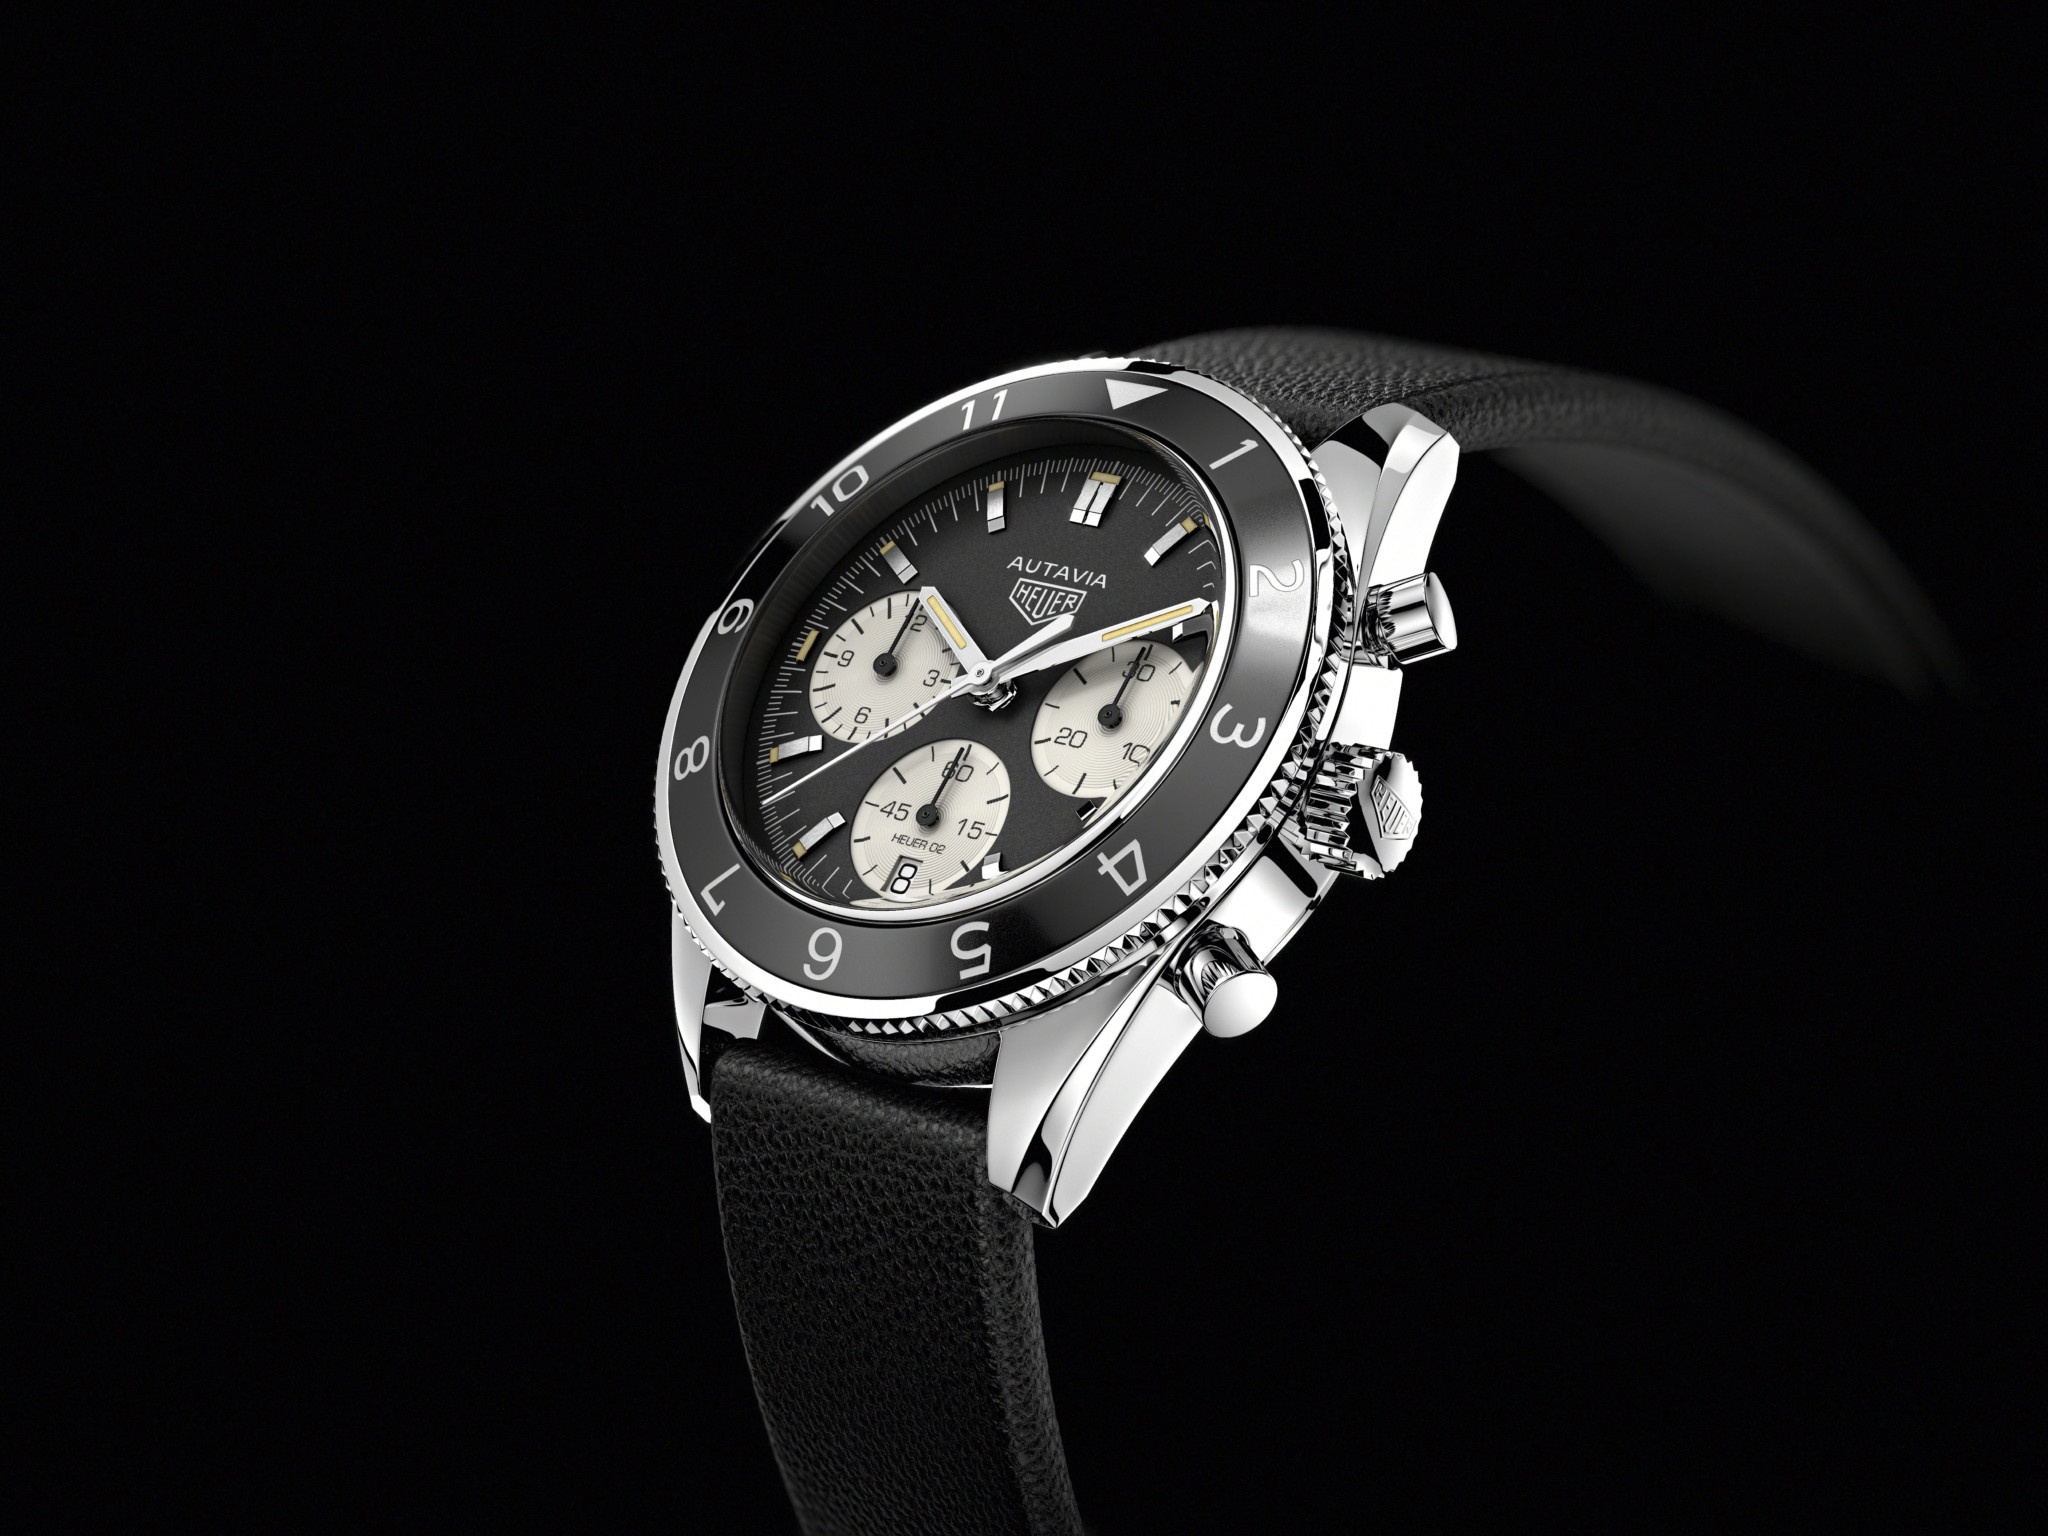 TAG Heuer also embraced the vintage vibe with the reissue of its Autavia model.